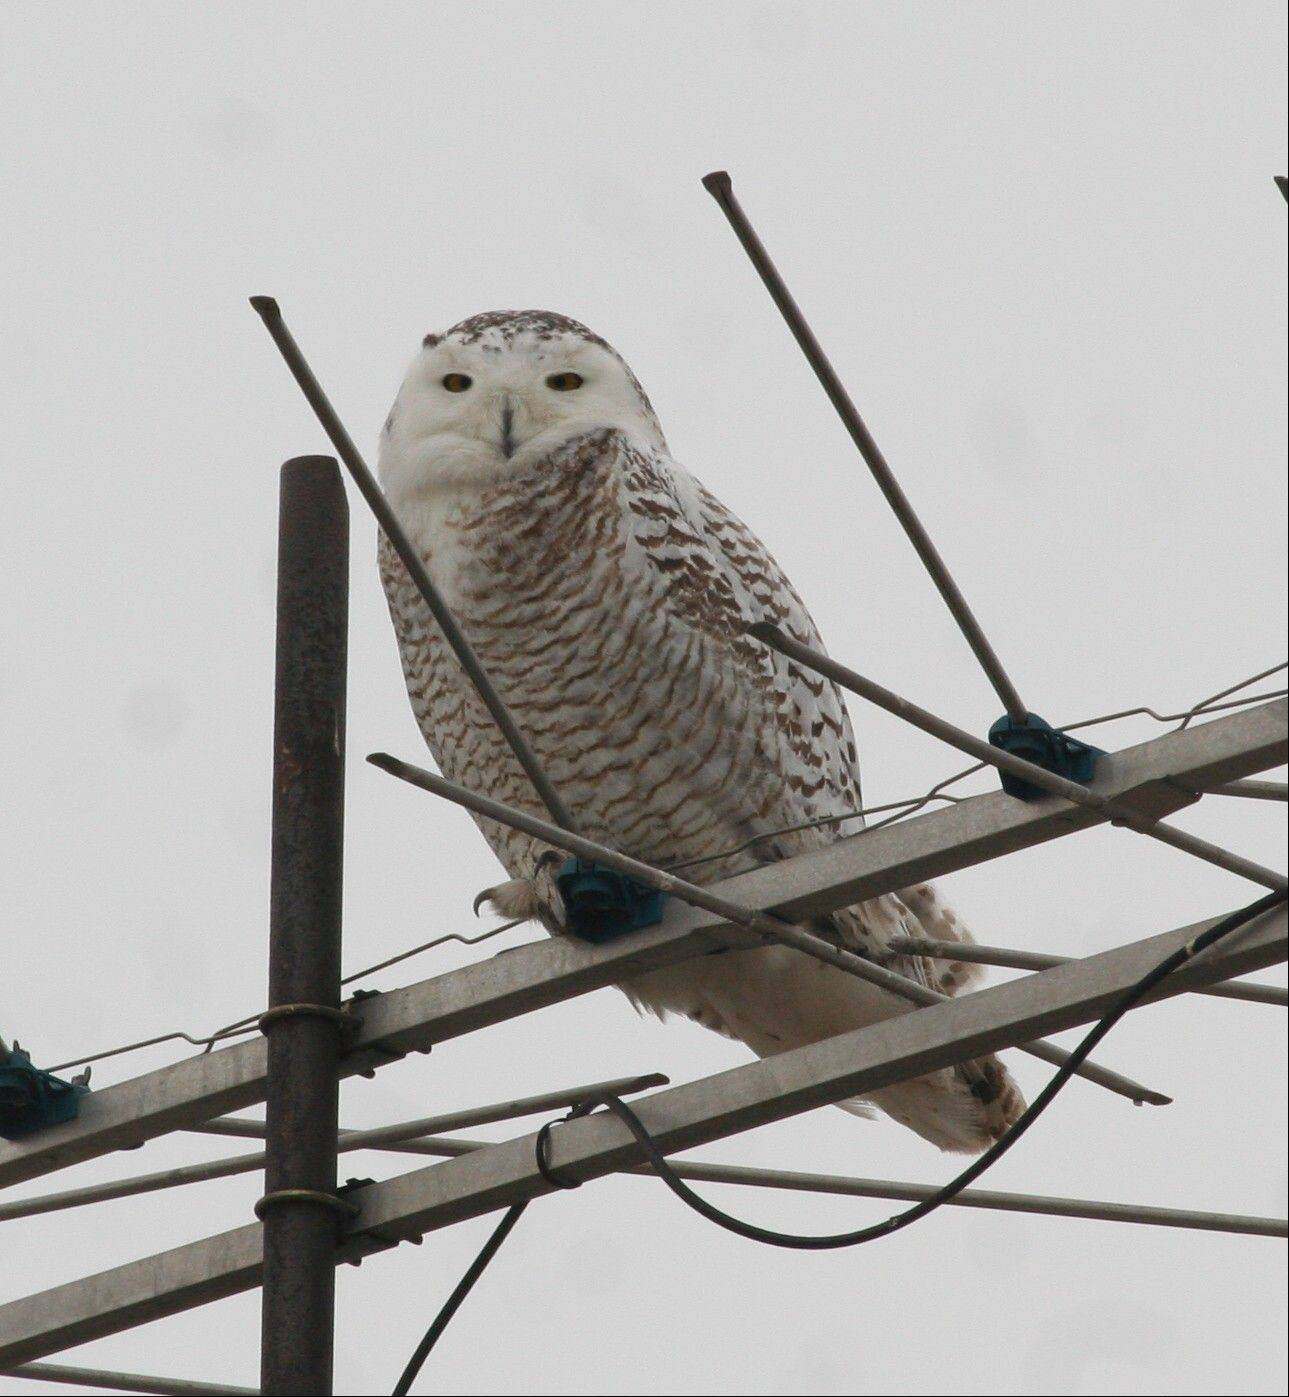 It's not unheard of for the suburbs to get a winter visit from an arctic snowy owl, says Bob Andrini, president of Kane County Audubon, who took this photograph in 2011. But the majestic white owls have been spotted here in record numbers this year.